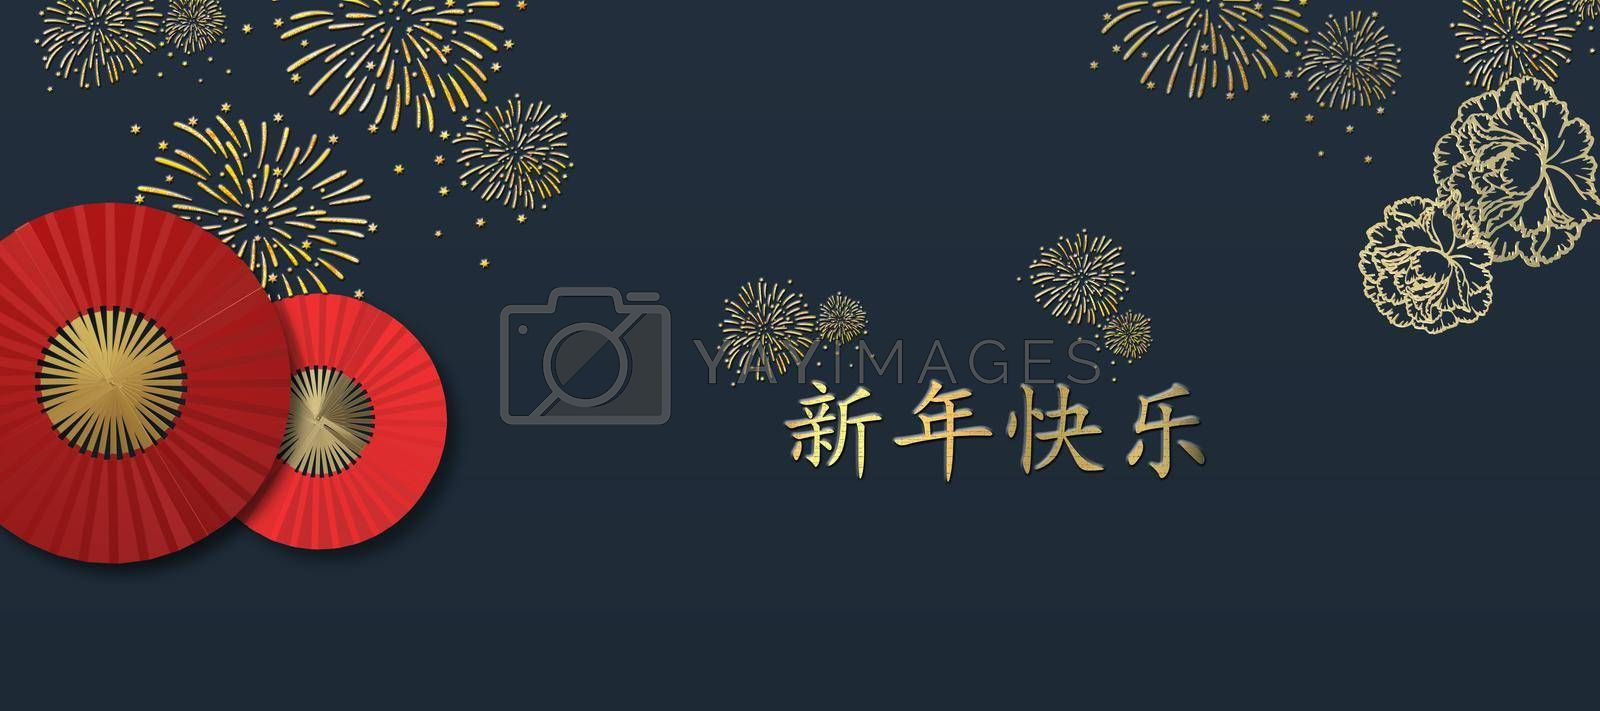 Happy New Year card. Happy Chinese new year golden text in Chinese. Design for greetings card, invitation, posters, brochure, calendar, flyers, banners. 3D illustration